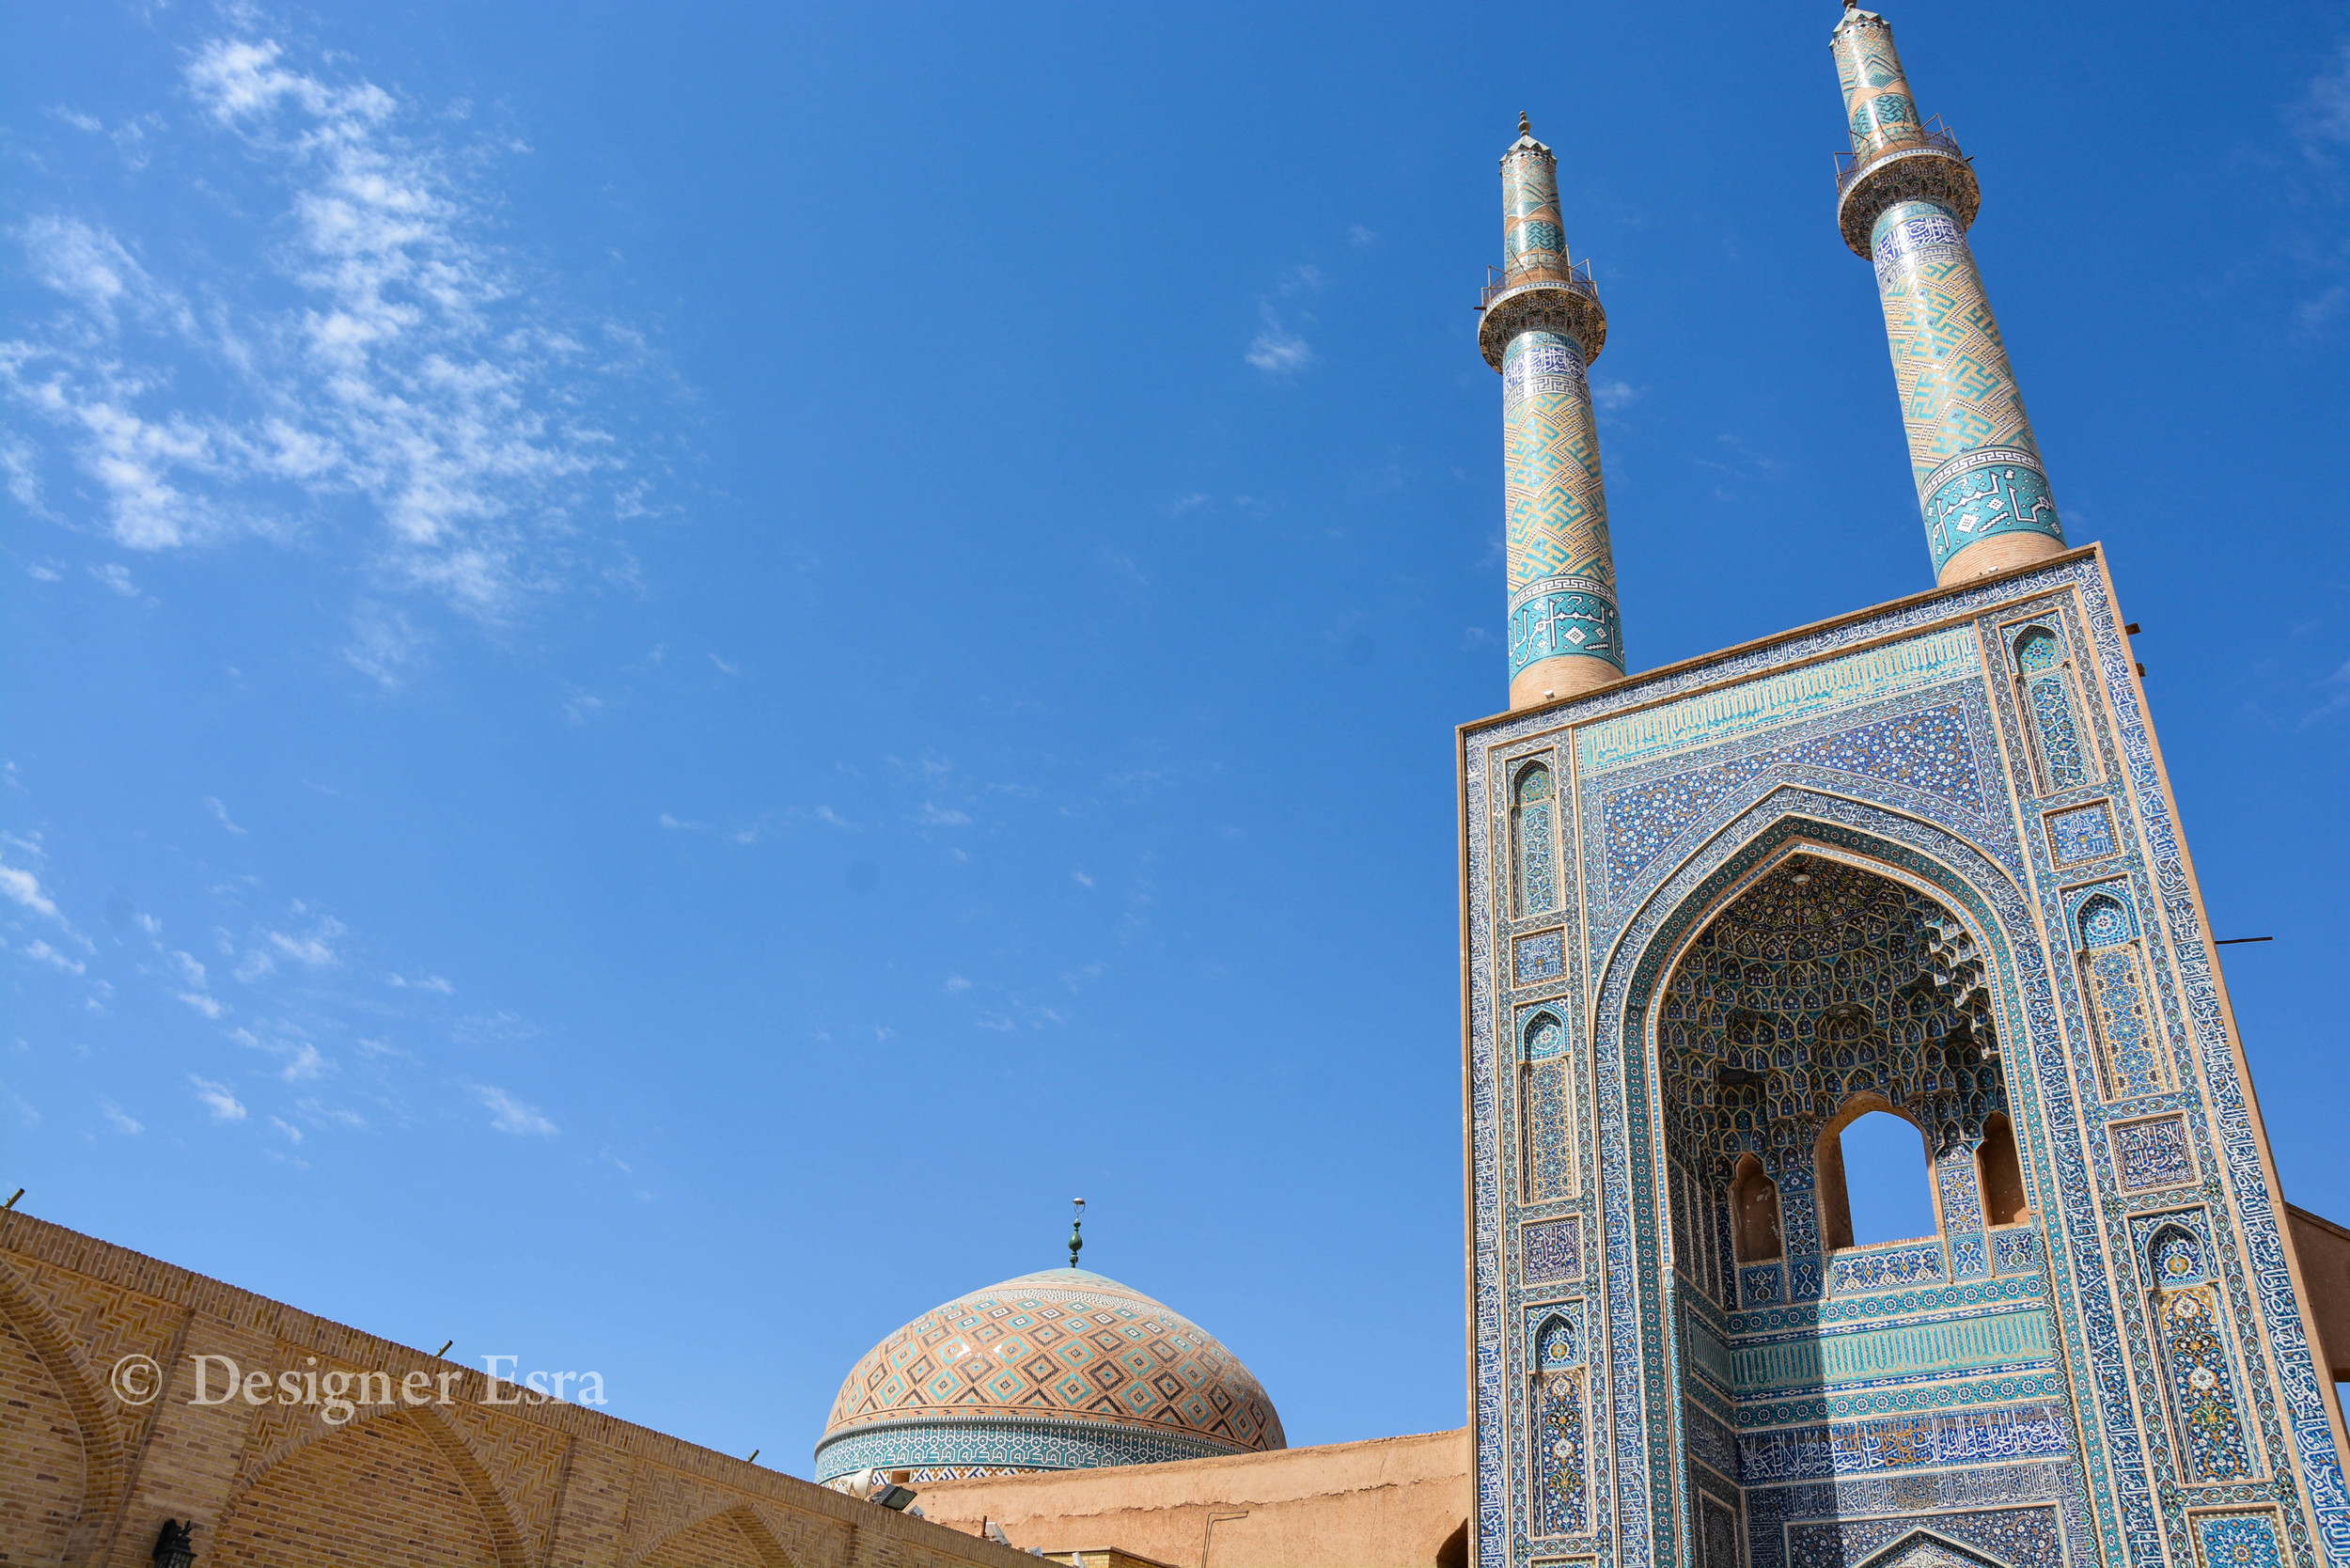 Jame'a / Friday Mosque in Yazd, Iran